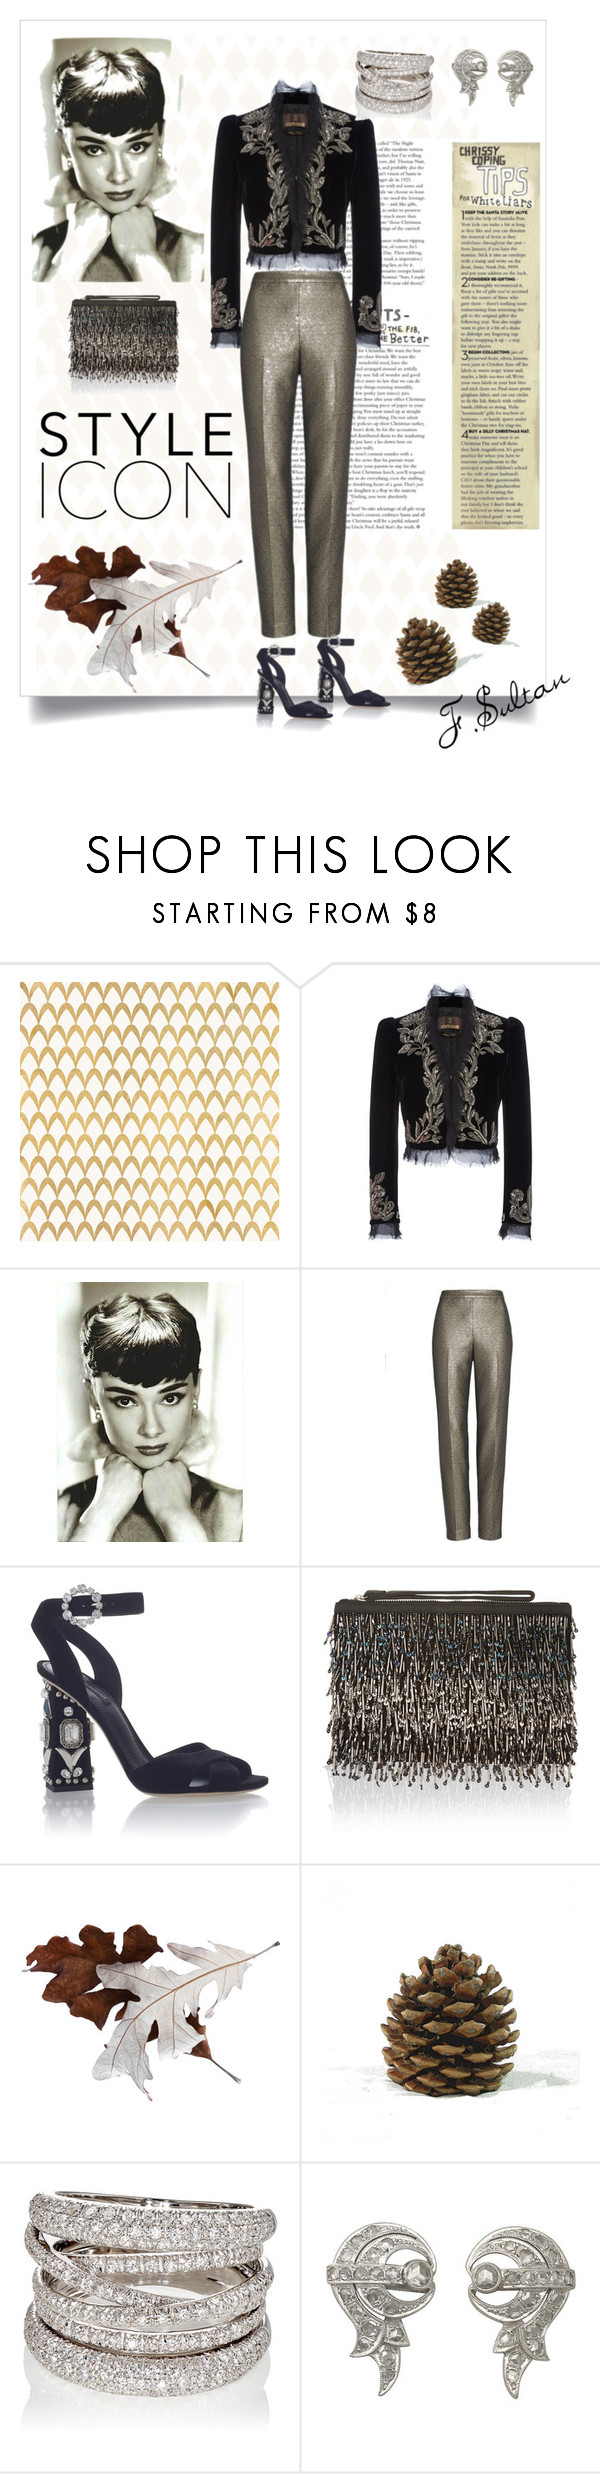 """Без названия #204"" by feruza-sultanova ❤ liked on Polyvore featuring Barclay Butera, Roberto Cavalli, St. John, Dolce&Gabbana, Accessorize and Sidney Garber"